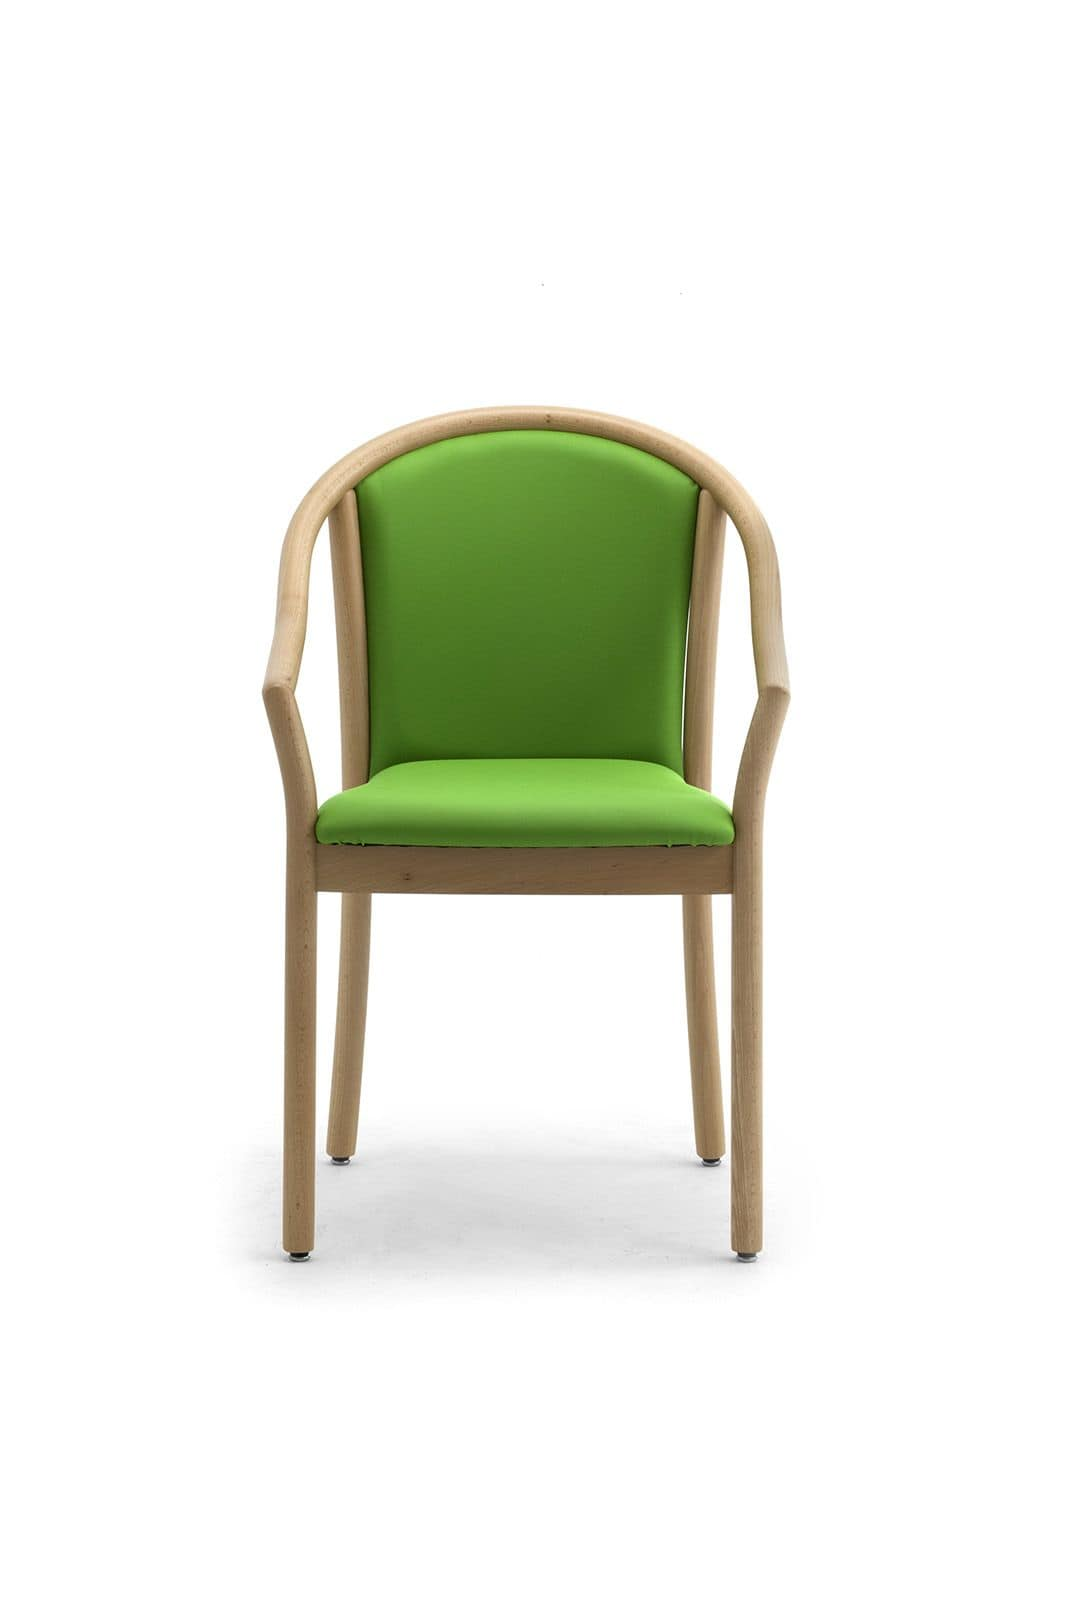 Mitos 1699, Armchair for conference rooms and waiting rooms